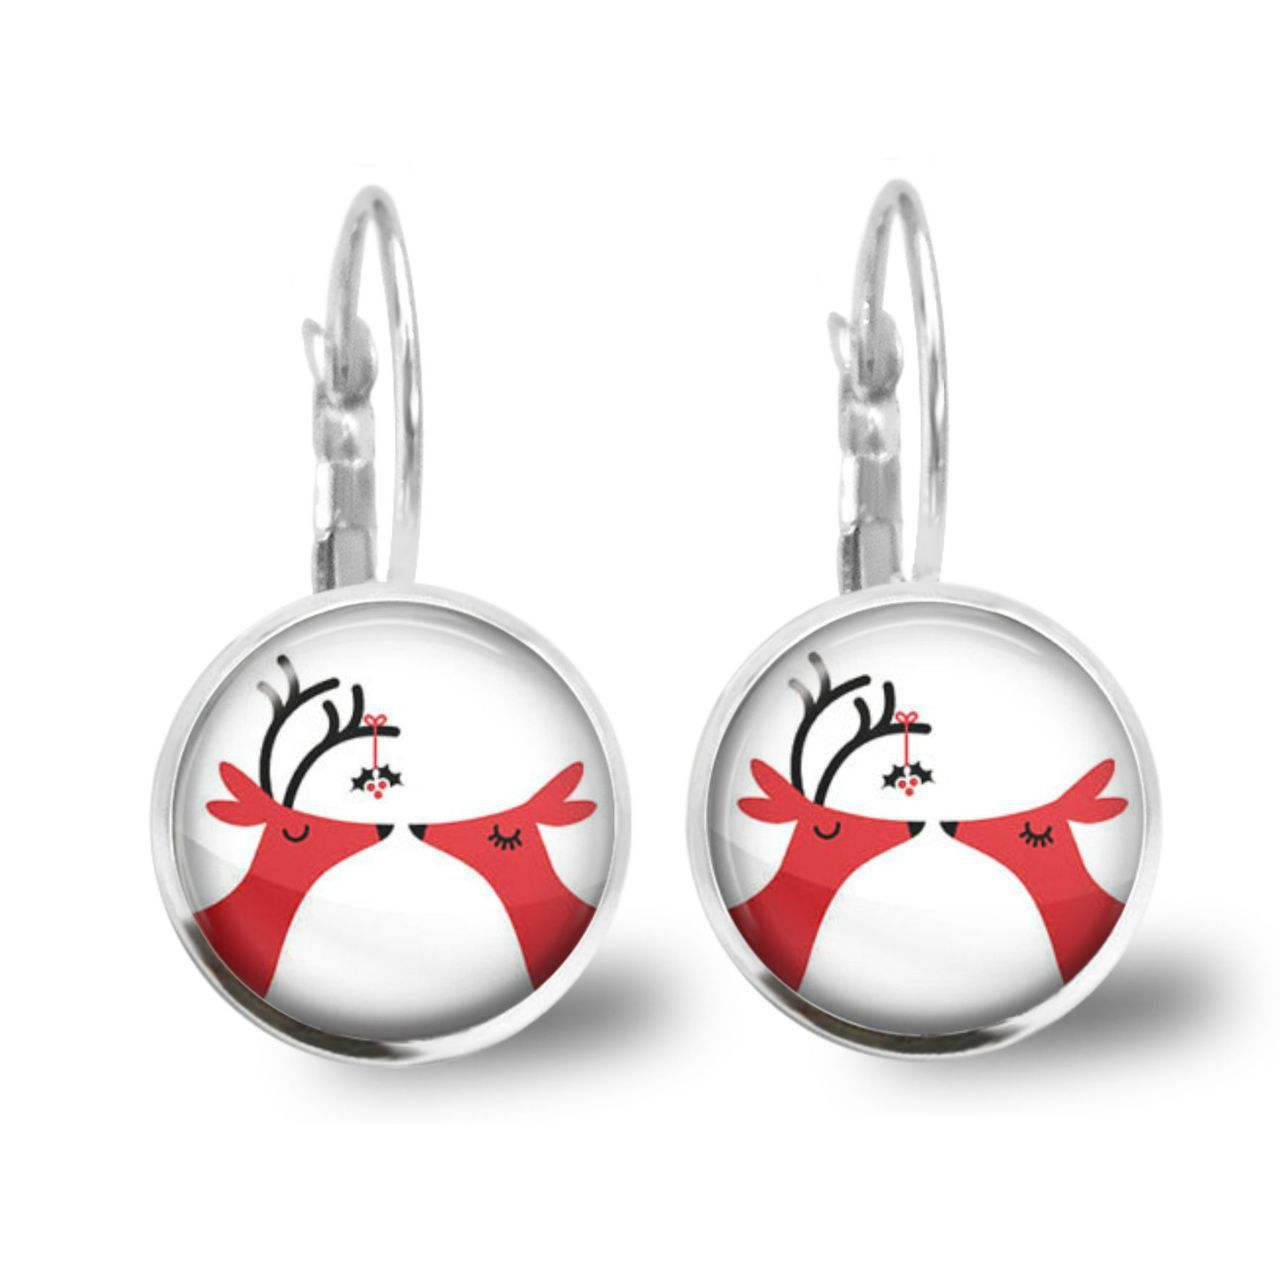 Chatterbox City - Deers kissing under the mistletoe Lever Back Glass Cabochon Earrings, $10.00 (http://www.chatterboxcity.com.au/deers-kissing-under-the-mistletoe-lever-back-glass-cabochon-earrings/)